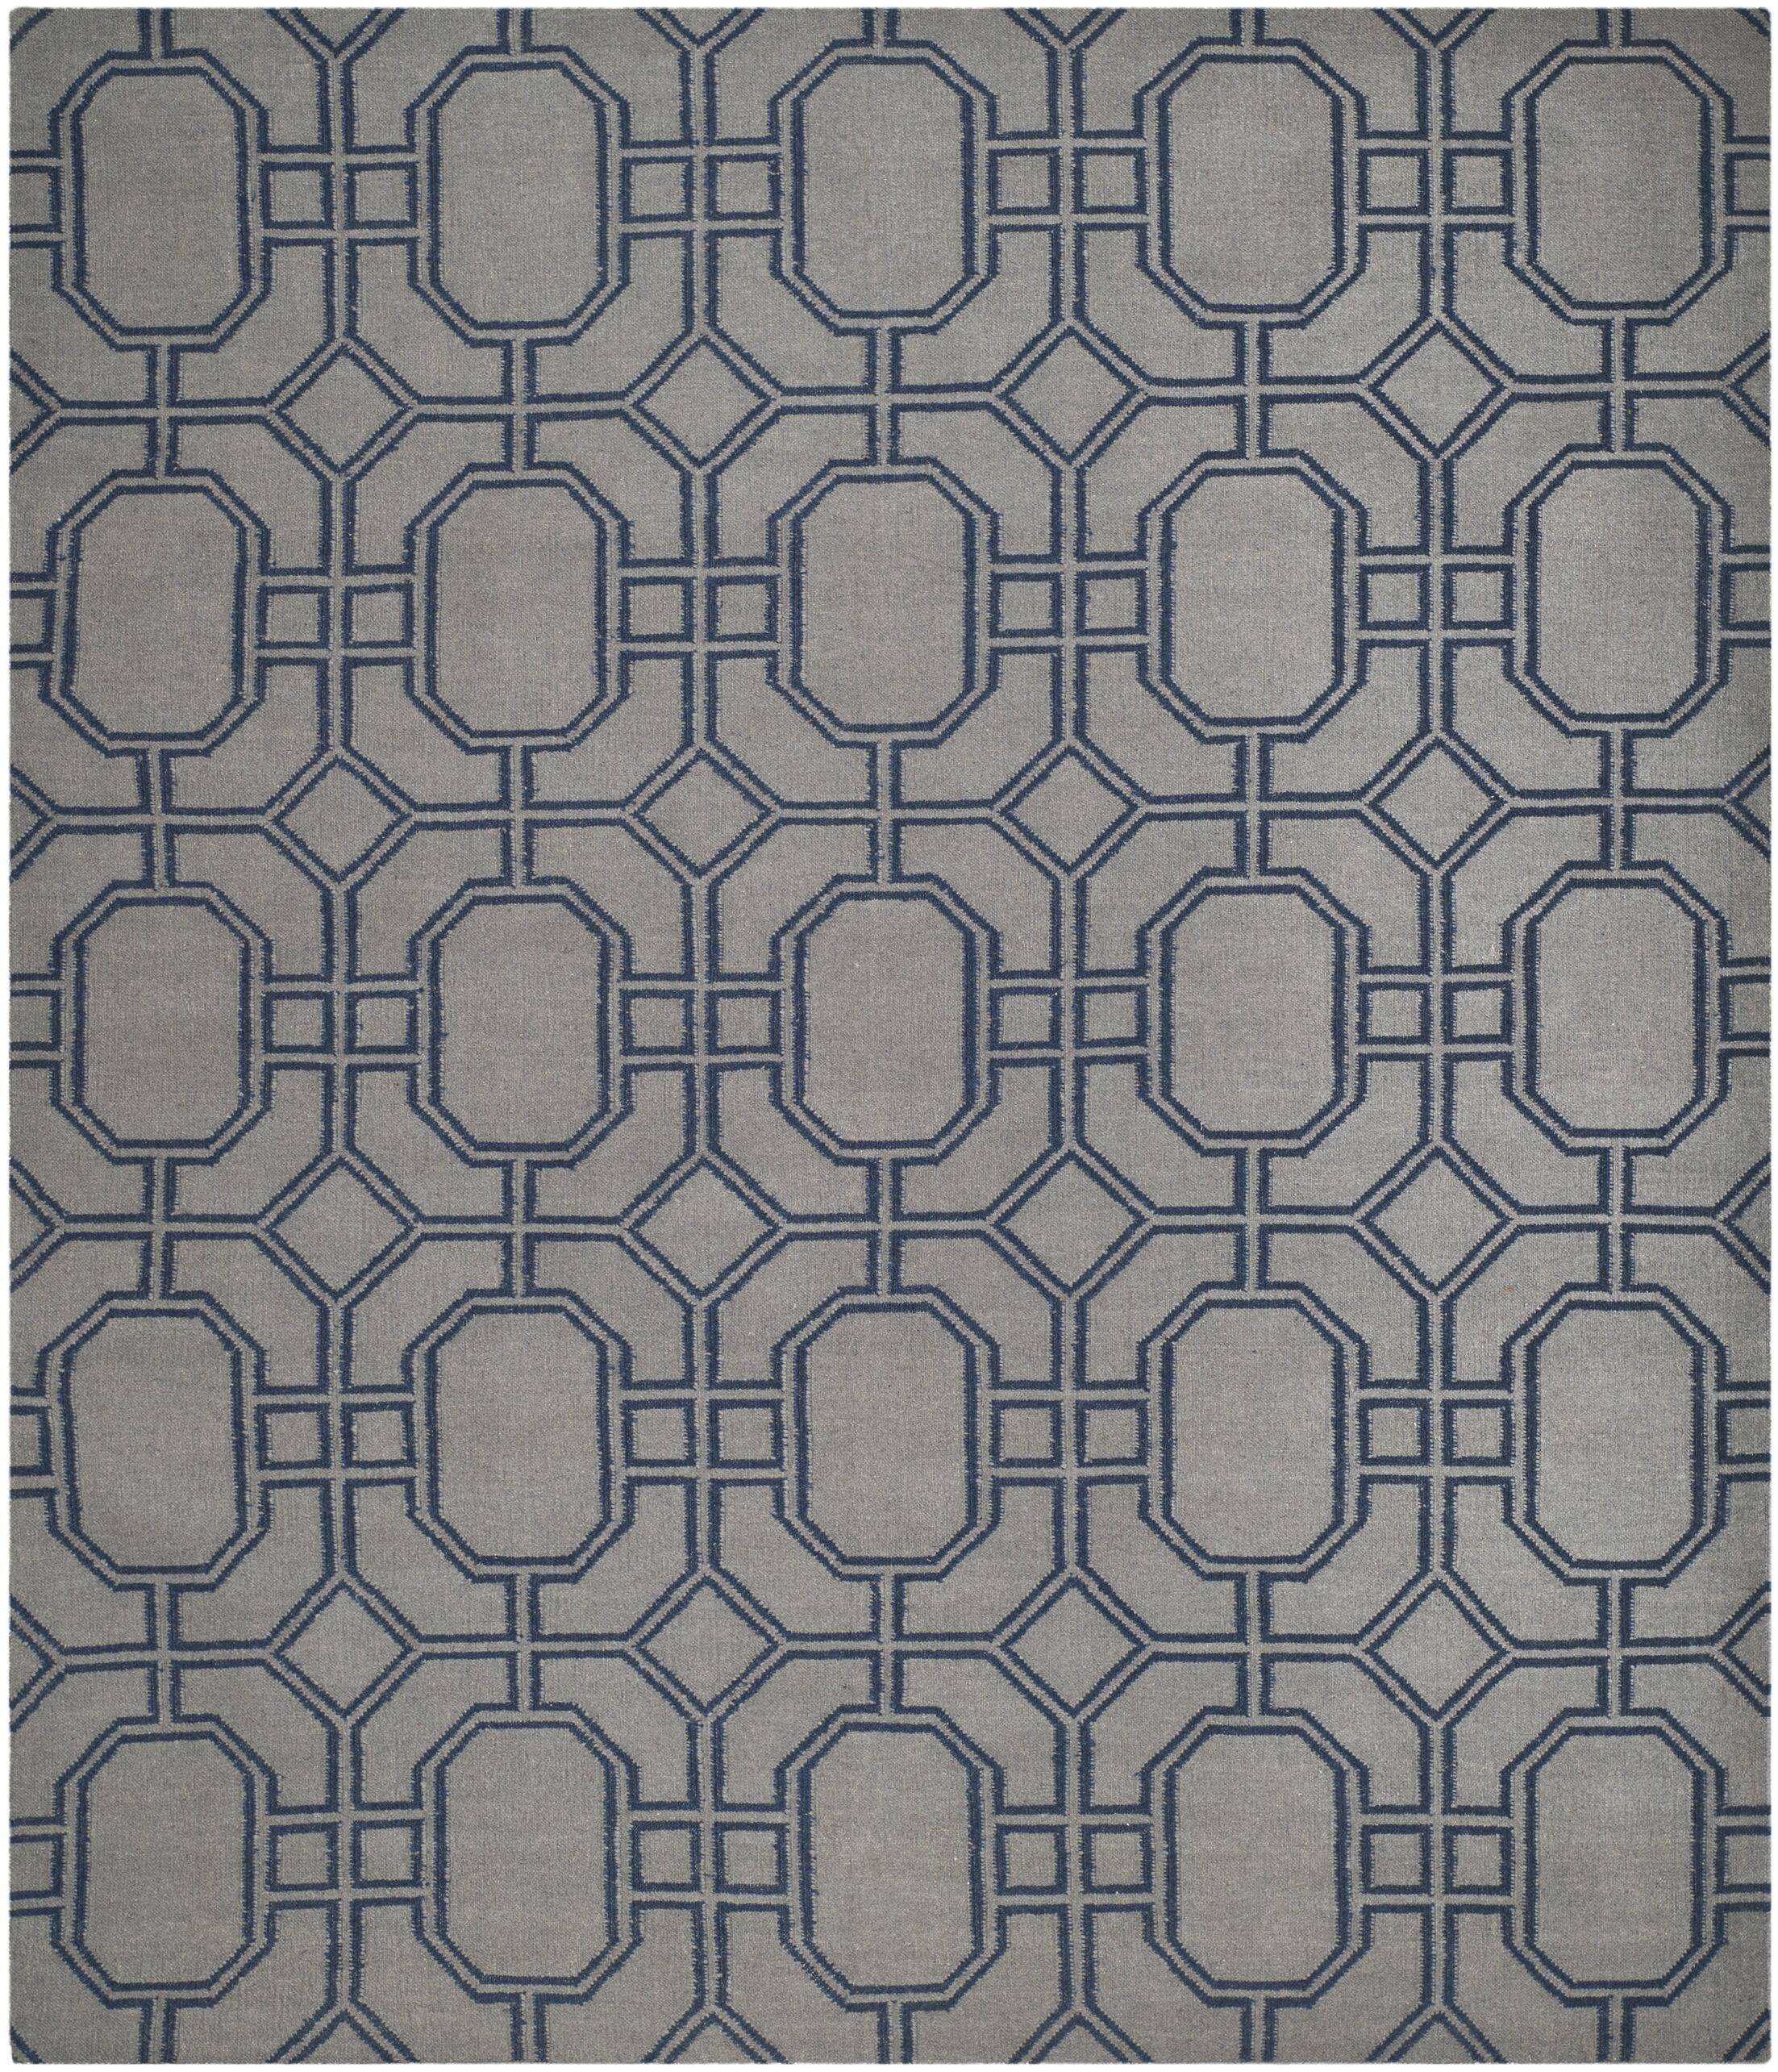 Dhurries Hand-Woven Wool Gray/Blue Area Rug Rug Size: Rectangle 5' x 8'